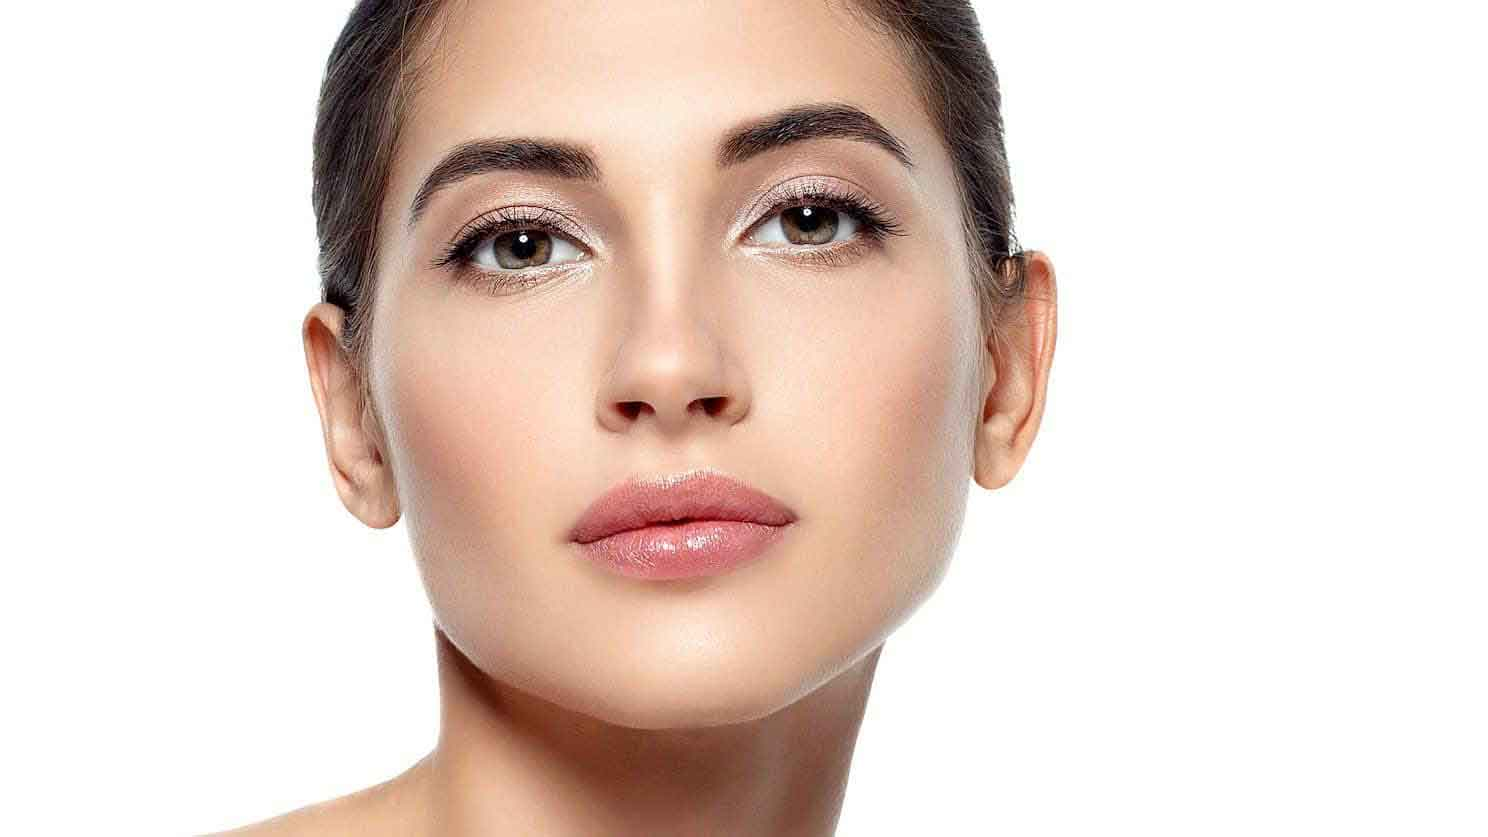 Nose surgery after fillers 4